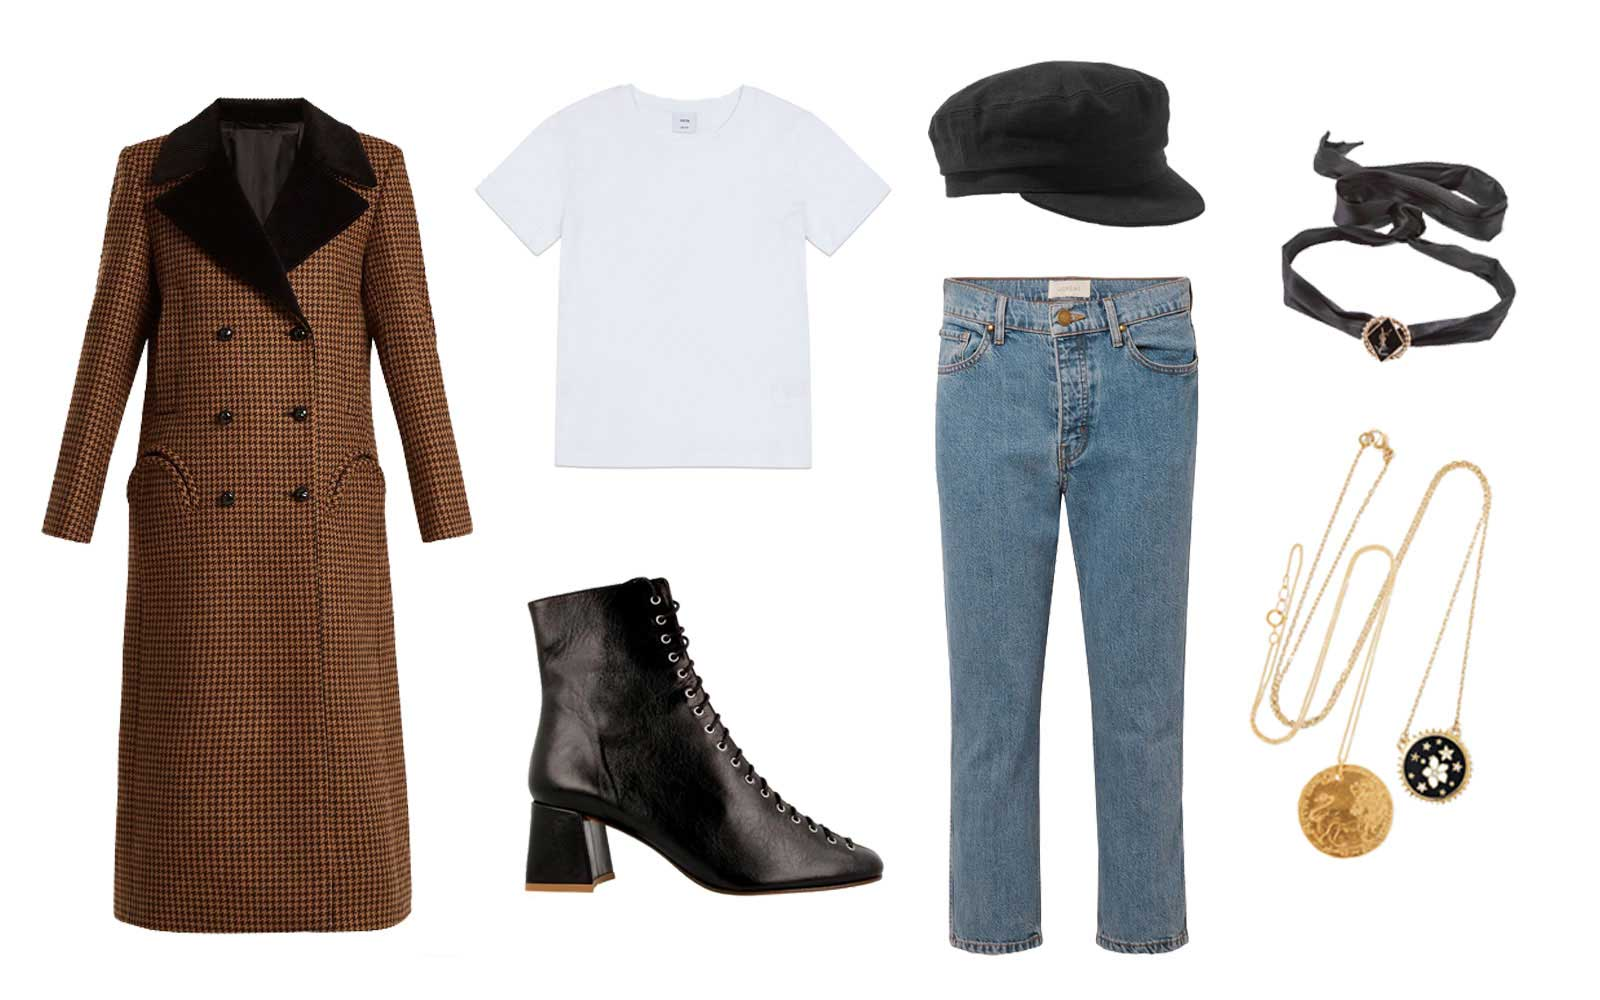 Lookbook for a day of cultural exploration in Paris